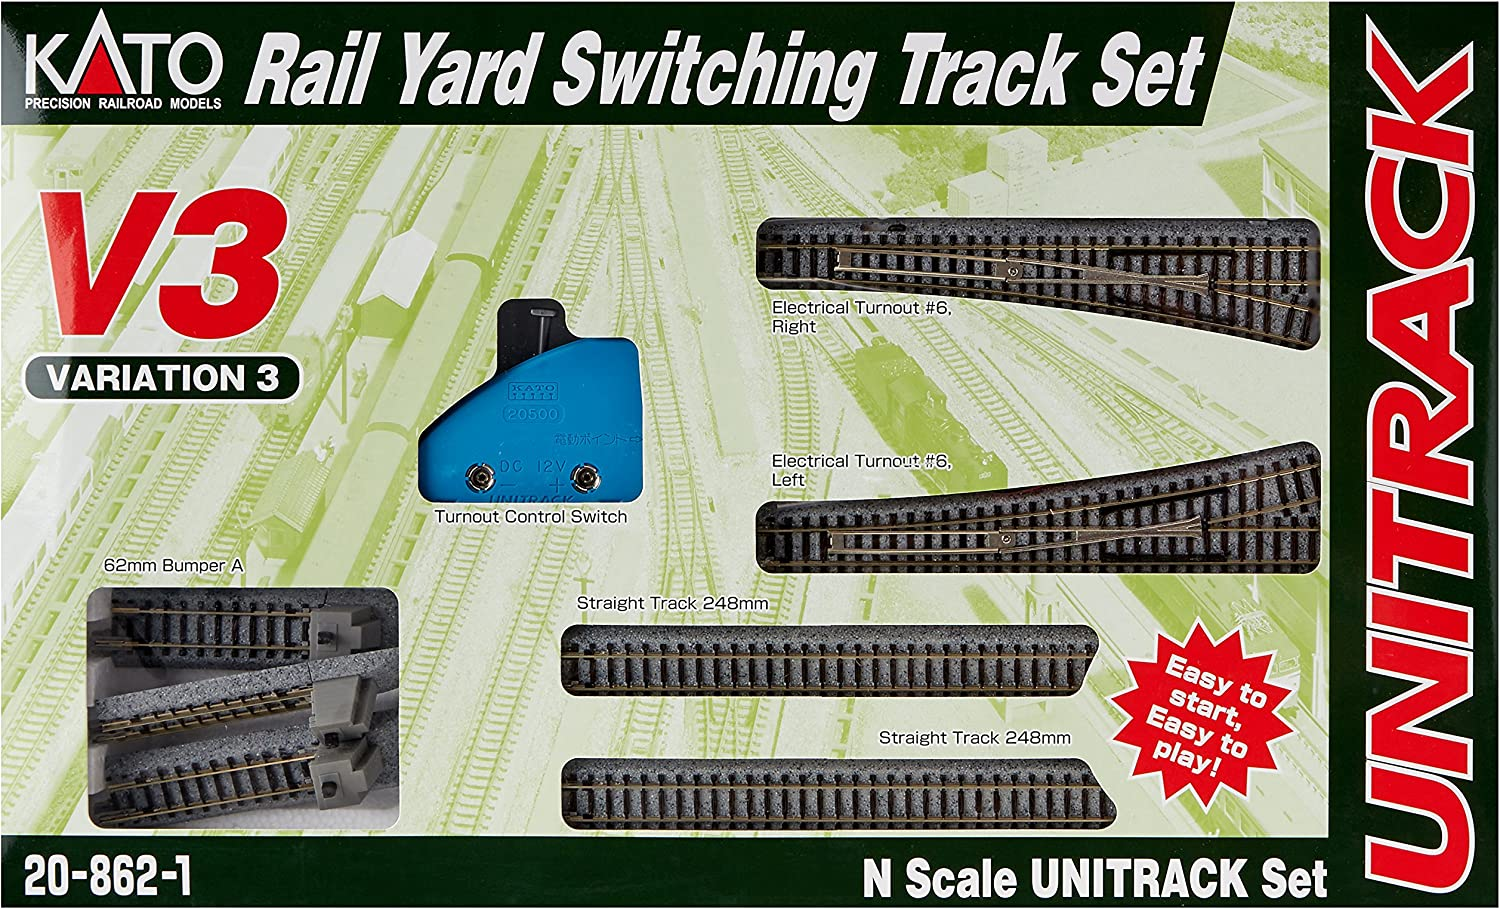 B000MQORQK Kato USA Model Train Products V3 UNITRACK Rail Yard Switching Set 91U7NOtjxmL.SL1500_